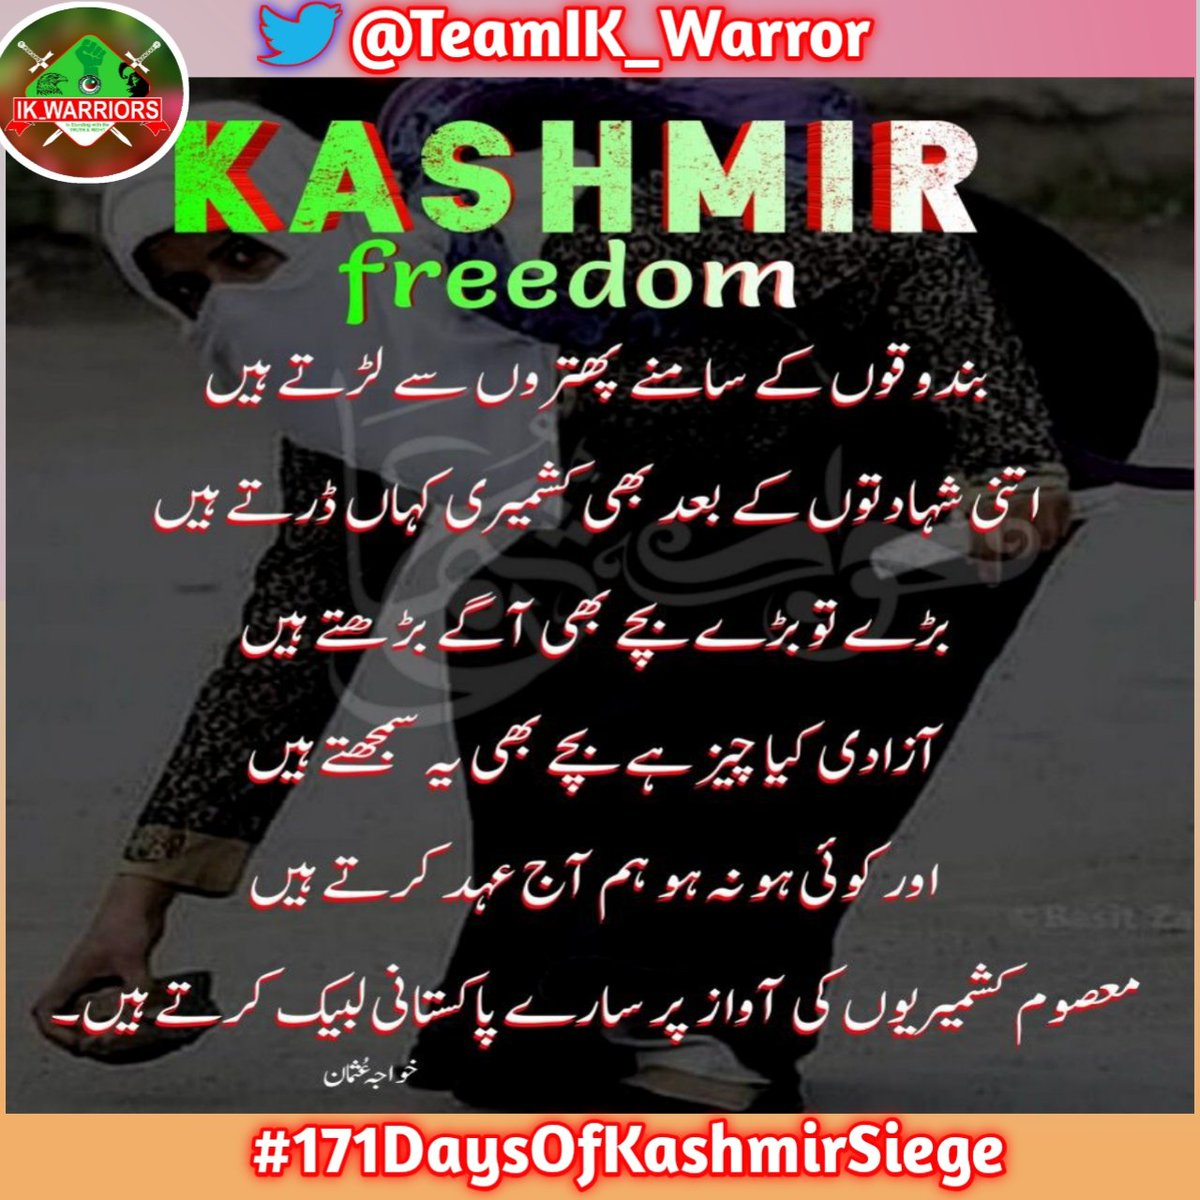 #171DaysOfKashmirSiege How long the world remain silent???  The world will speak when the both countries face war <br>http://pic.twitter.com/VWwBAPmDC6